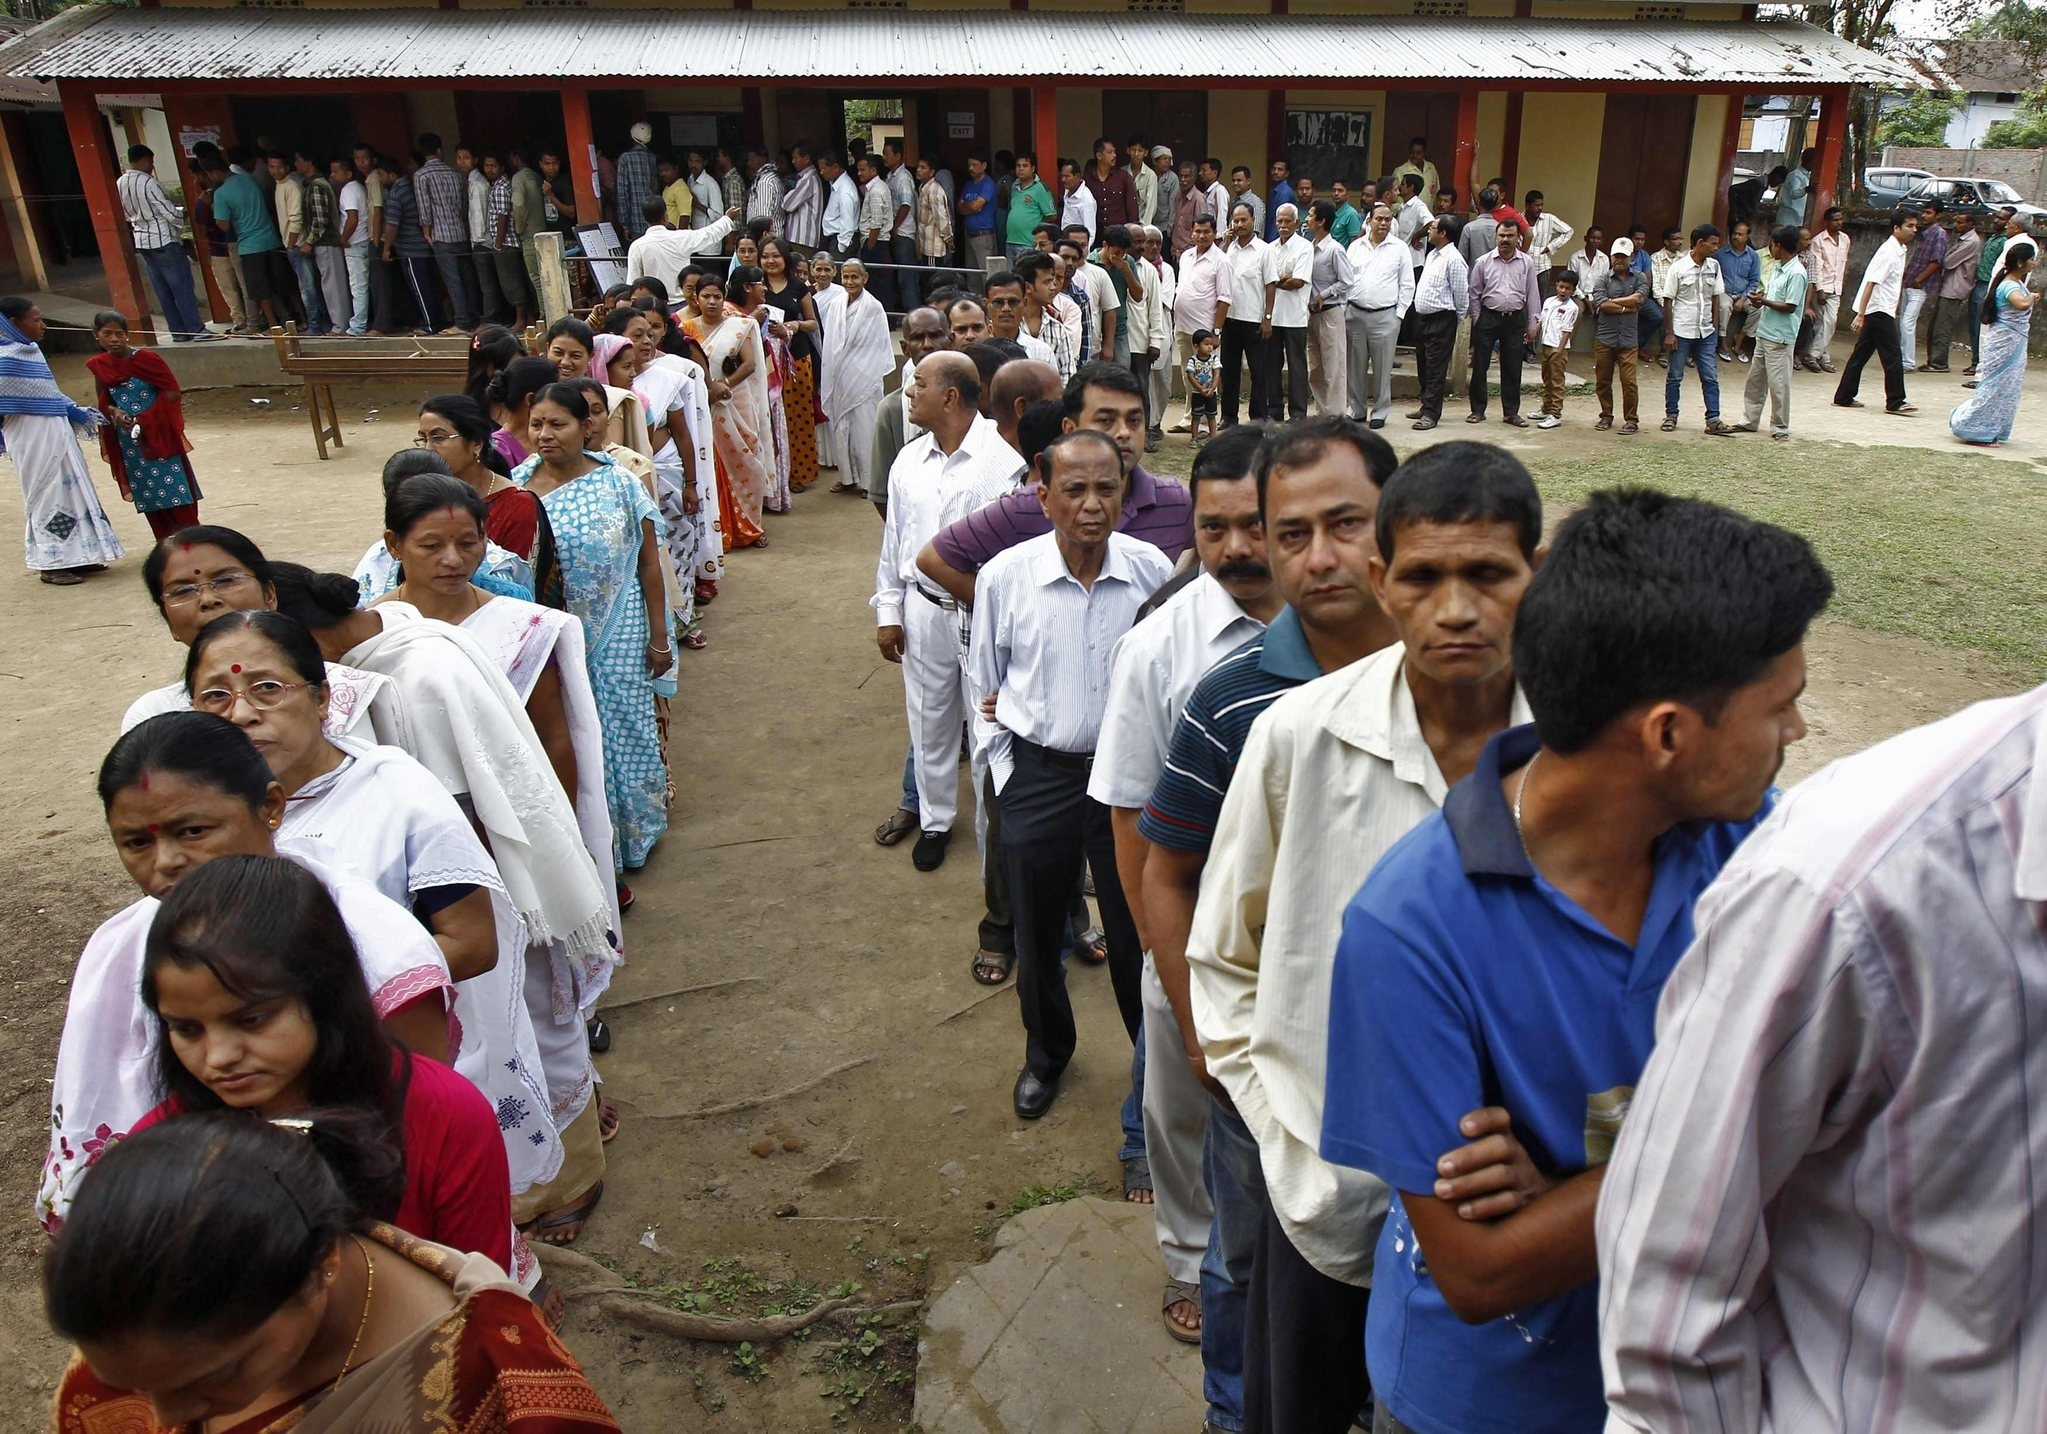 People line up to cast their vote outside a polling station in Nakhrai village in Tinsukia district in the northeastern Indian state of Assam April 7, 2014. (REUTERS Photo)